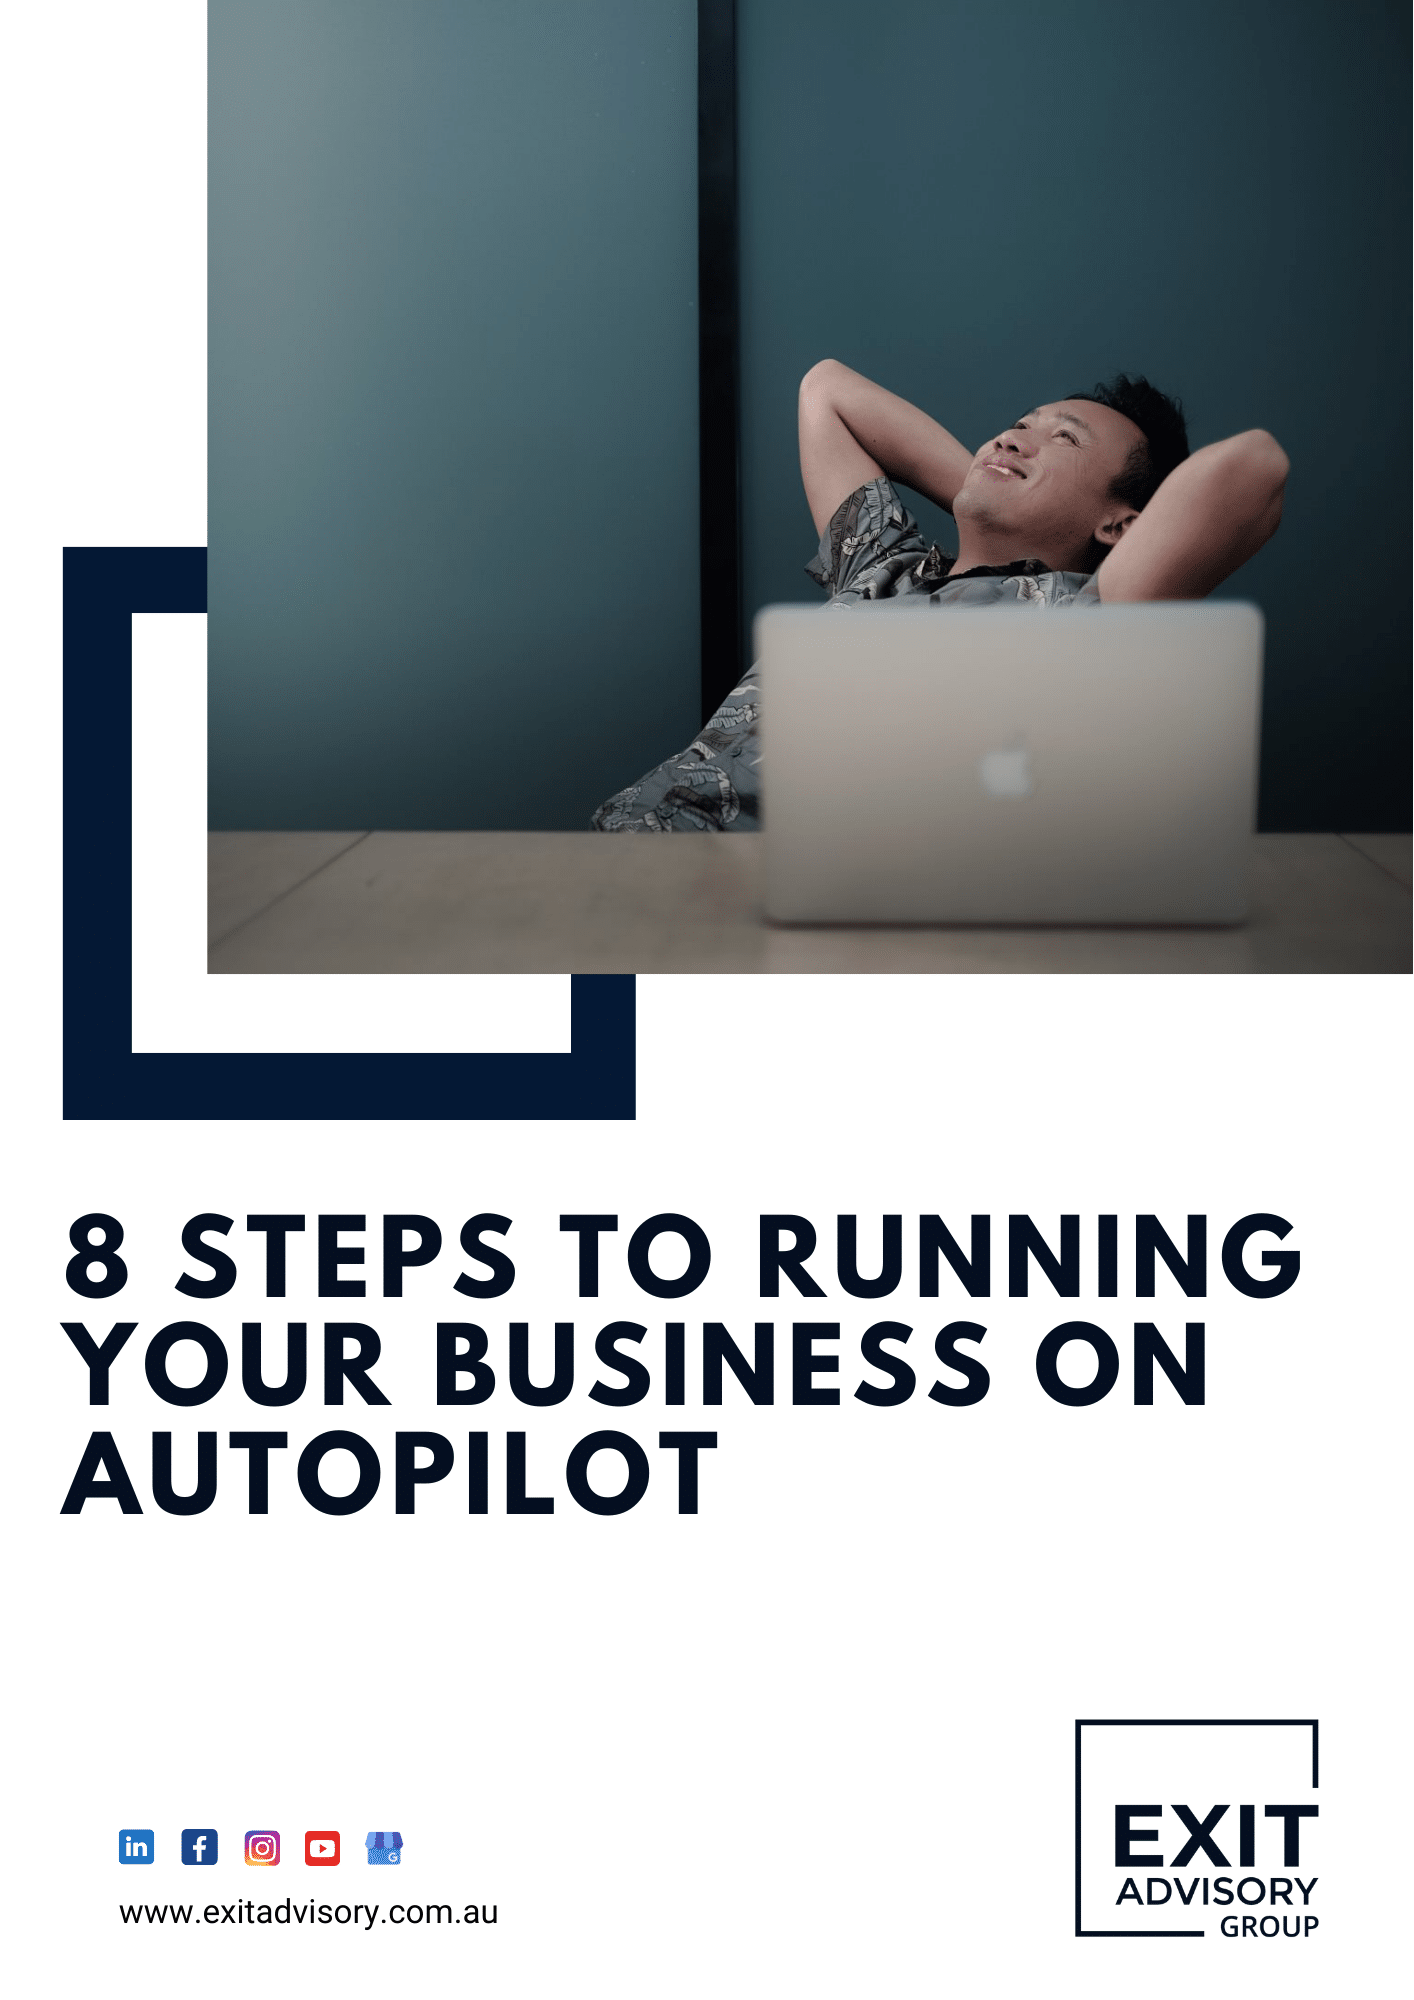 Build a valuable, scalable and saleable business on autopilot